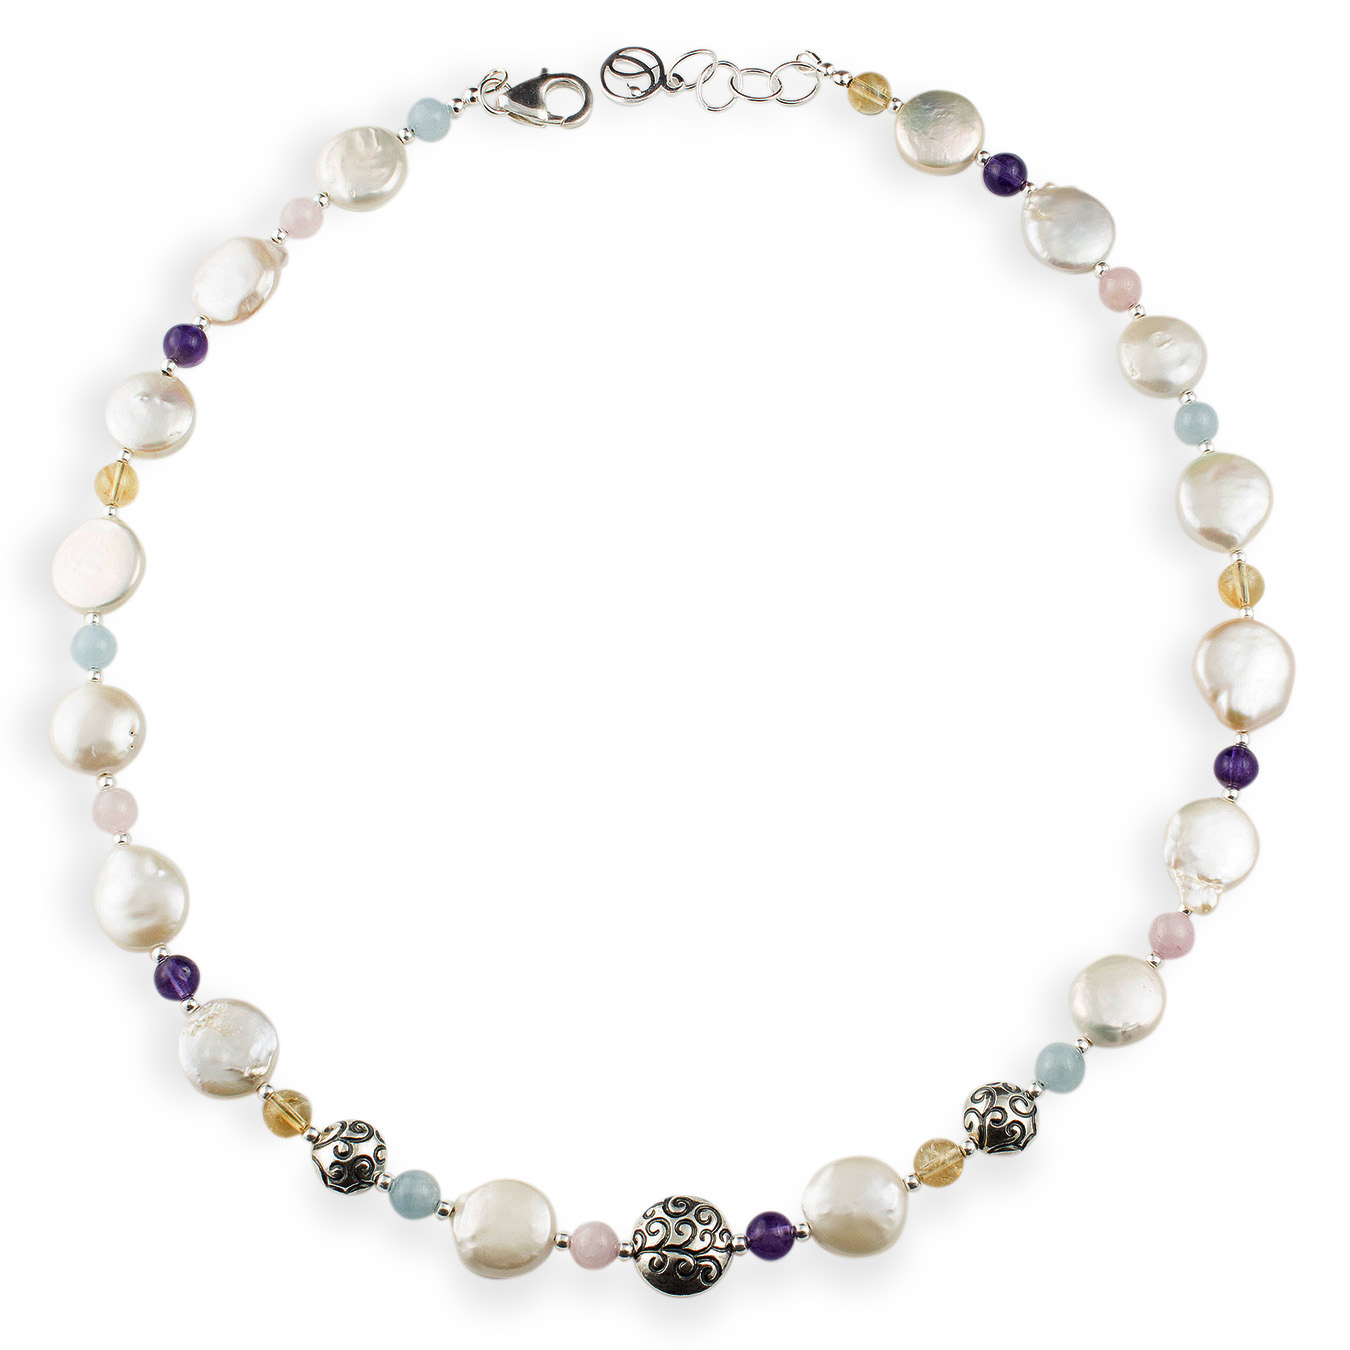 Custom birthstone necklace with cultured coin pearls and amethyst